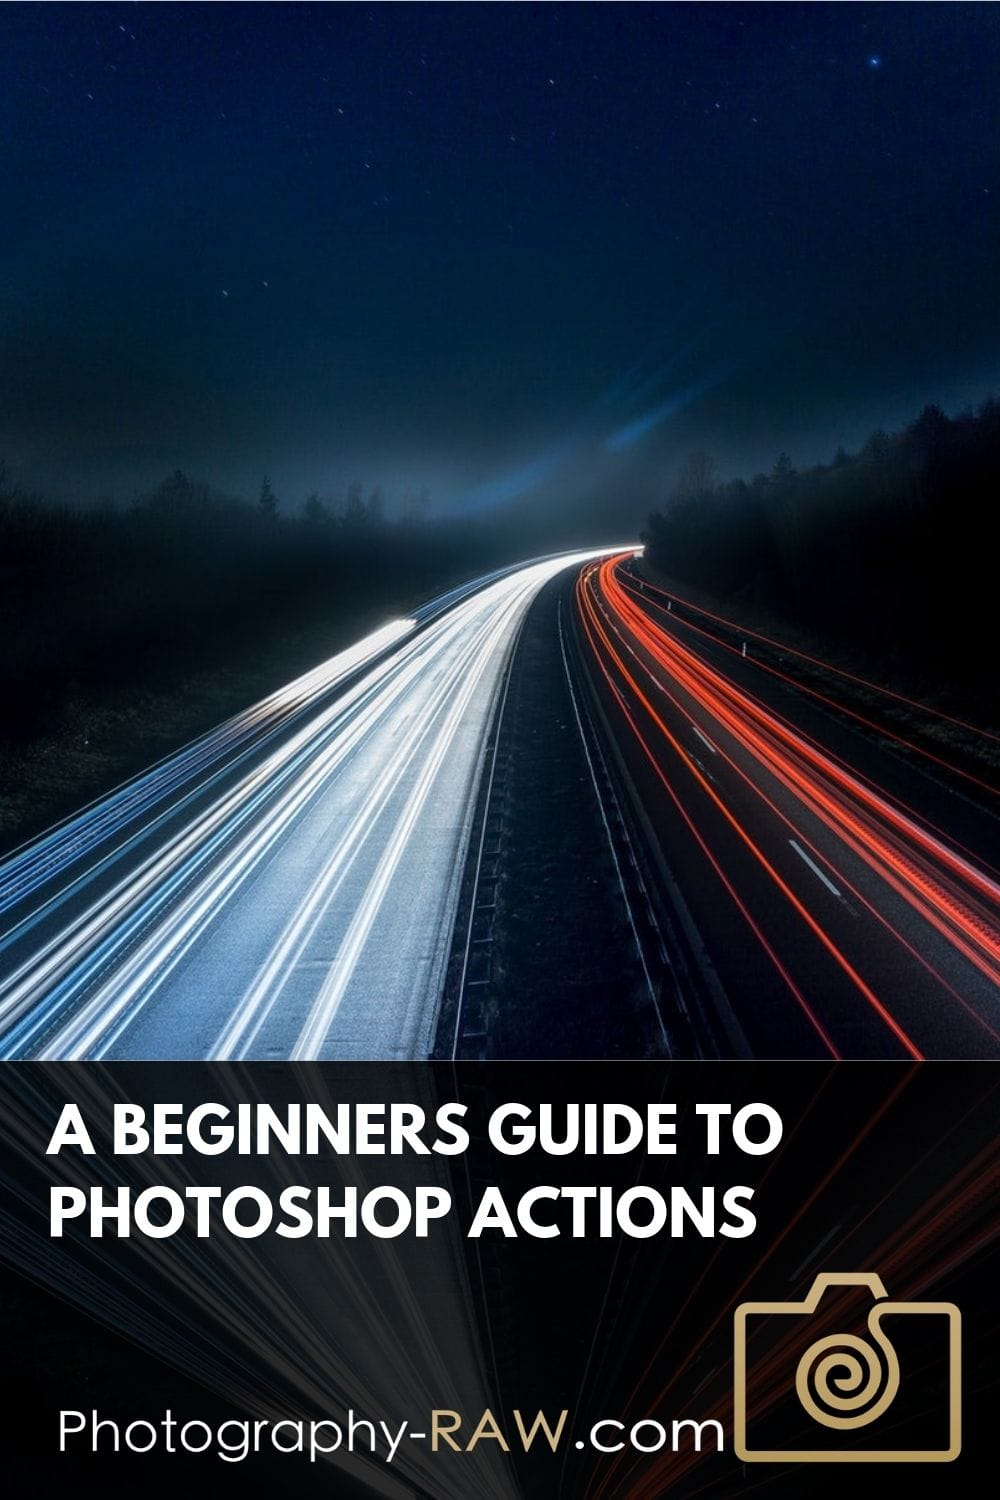 A Beginners Guide To Photoshop Actions